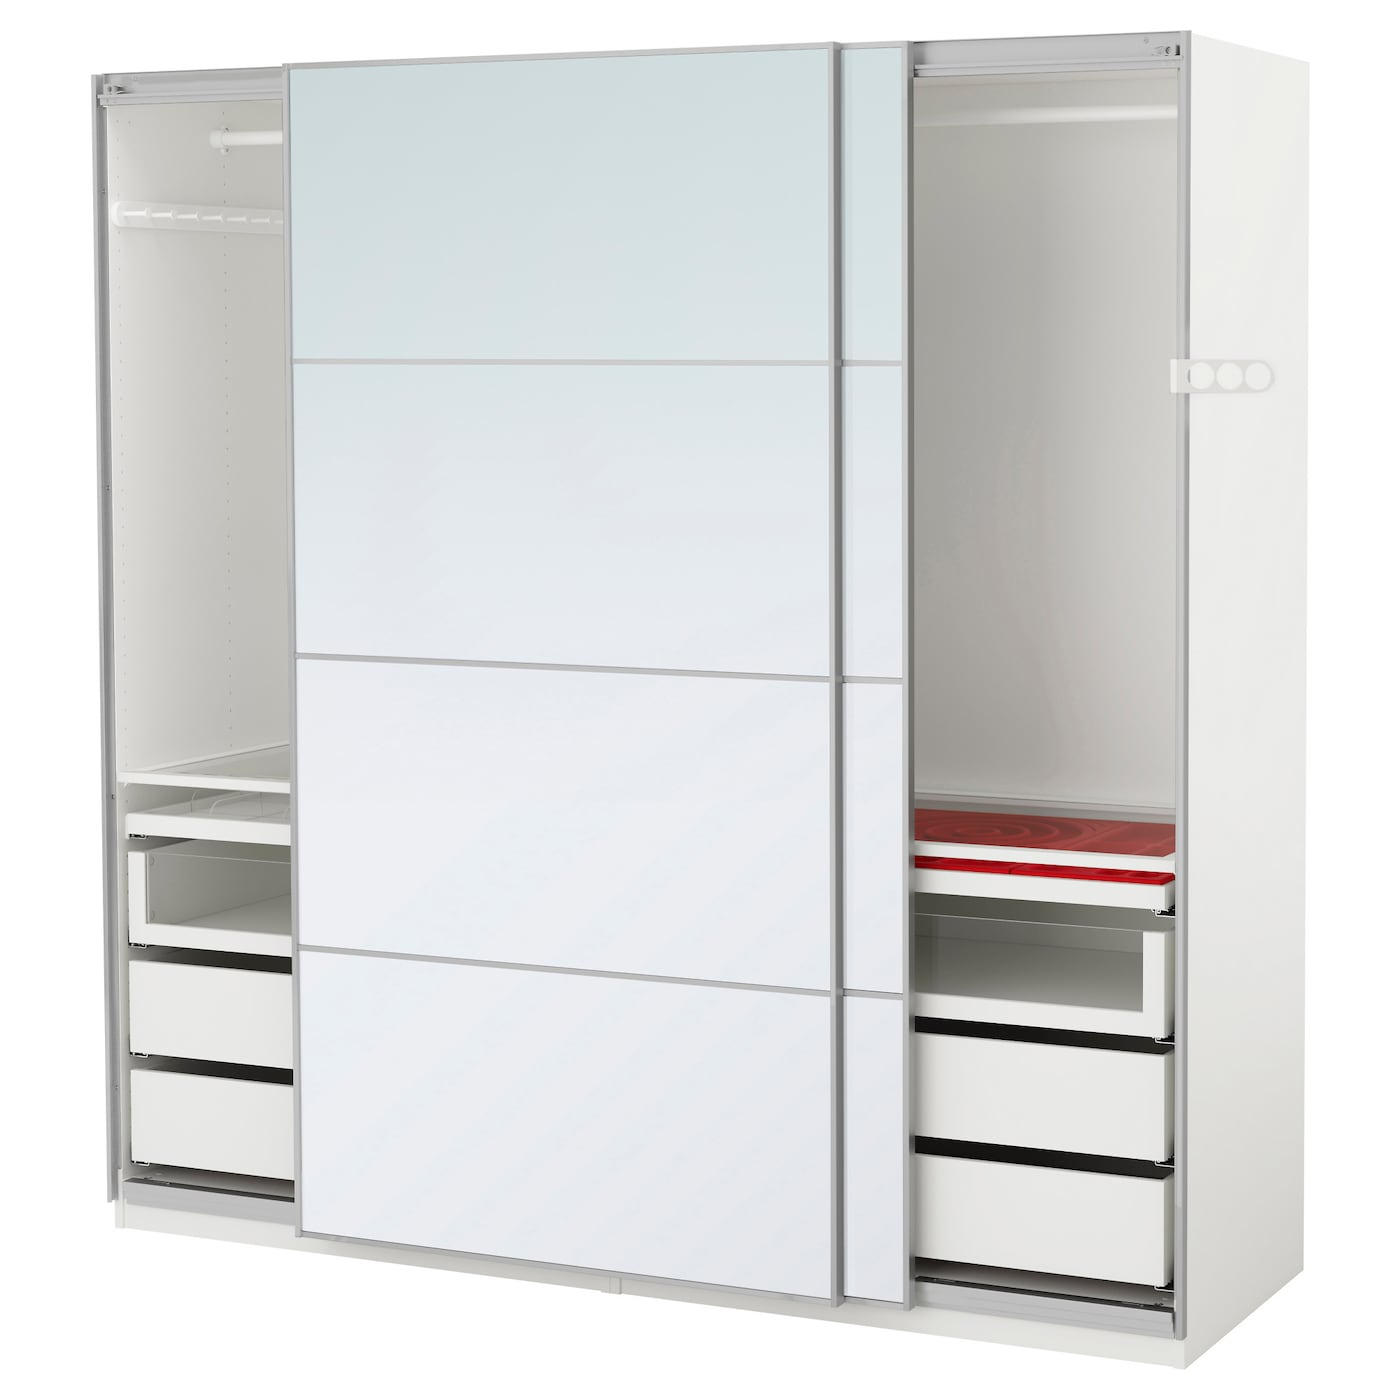 Muebles Pax Ikea - Wardrobe Combinations With Doors Ikea[mjhdah]http://www.handballtunisie.org/upload/2017/12/15/first-rate-sliding-door-wardrobe-closet-wardrobe-closet-white-calegion-furniture-brown-wooden-free-sliding-door-wardrobe-closet-l-203c573f32926338.jpg